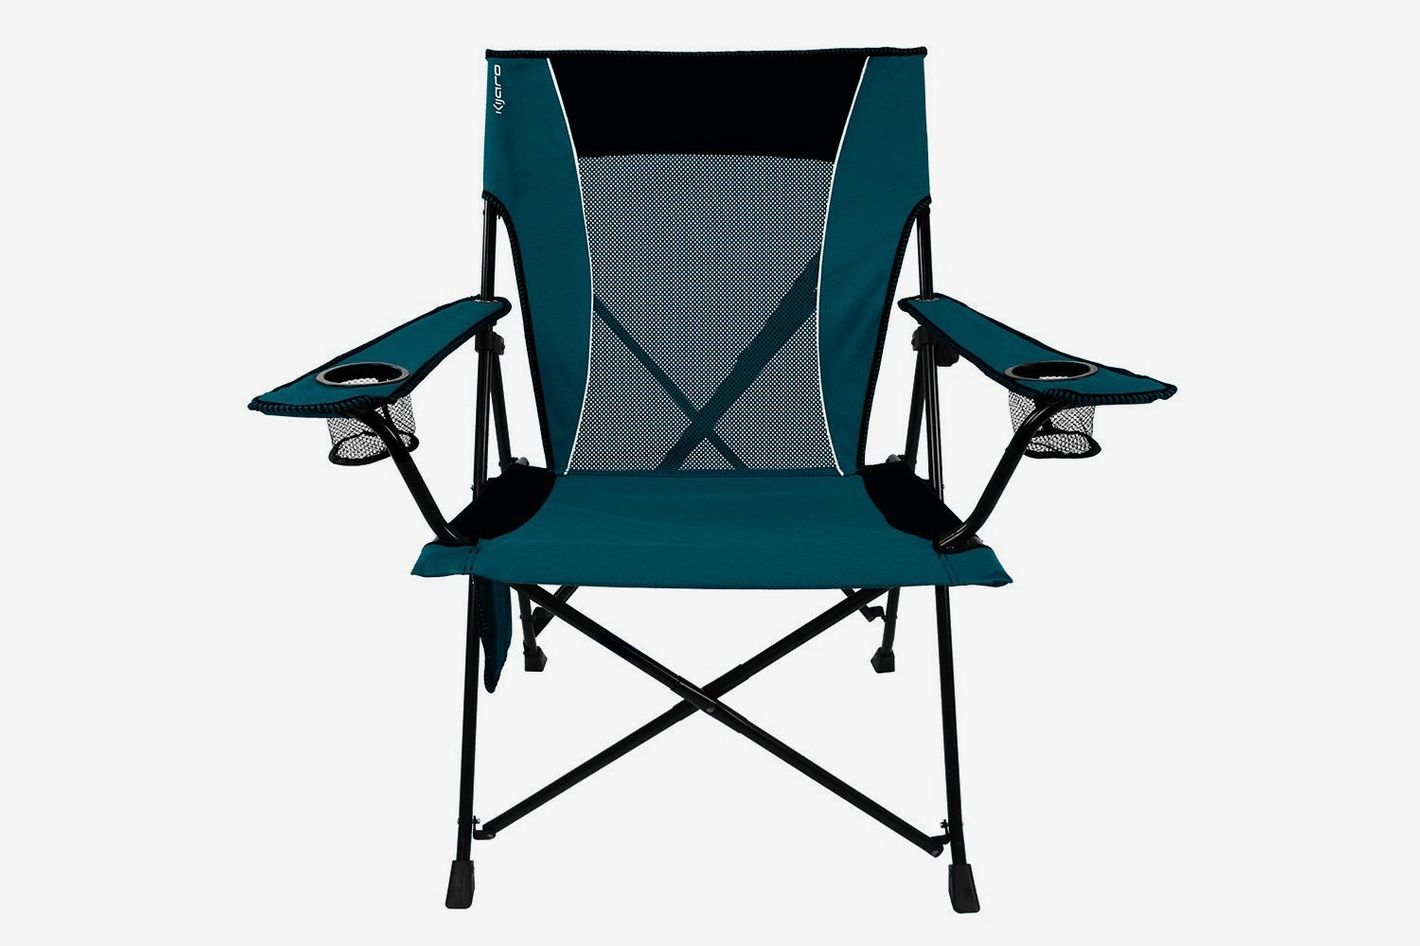 Genial Kijaro Dual Lock Portable Camping And Sports Chair